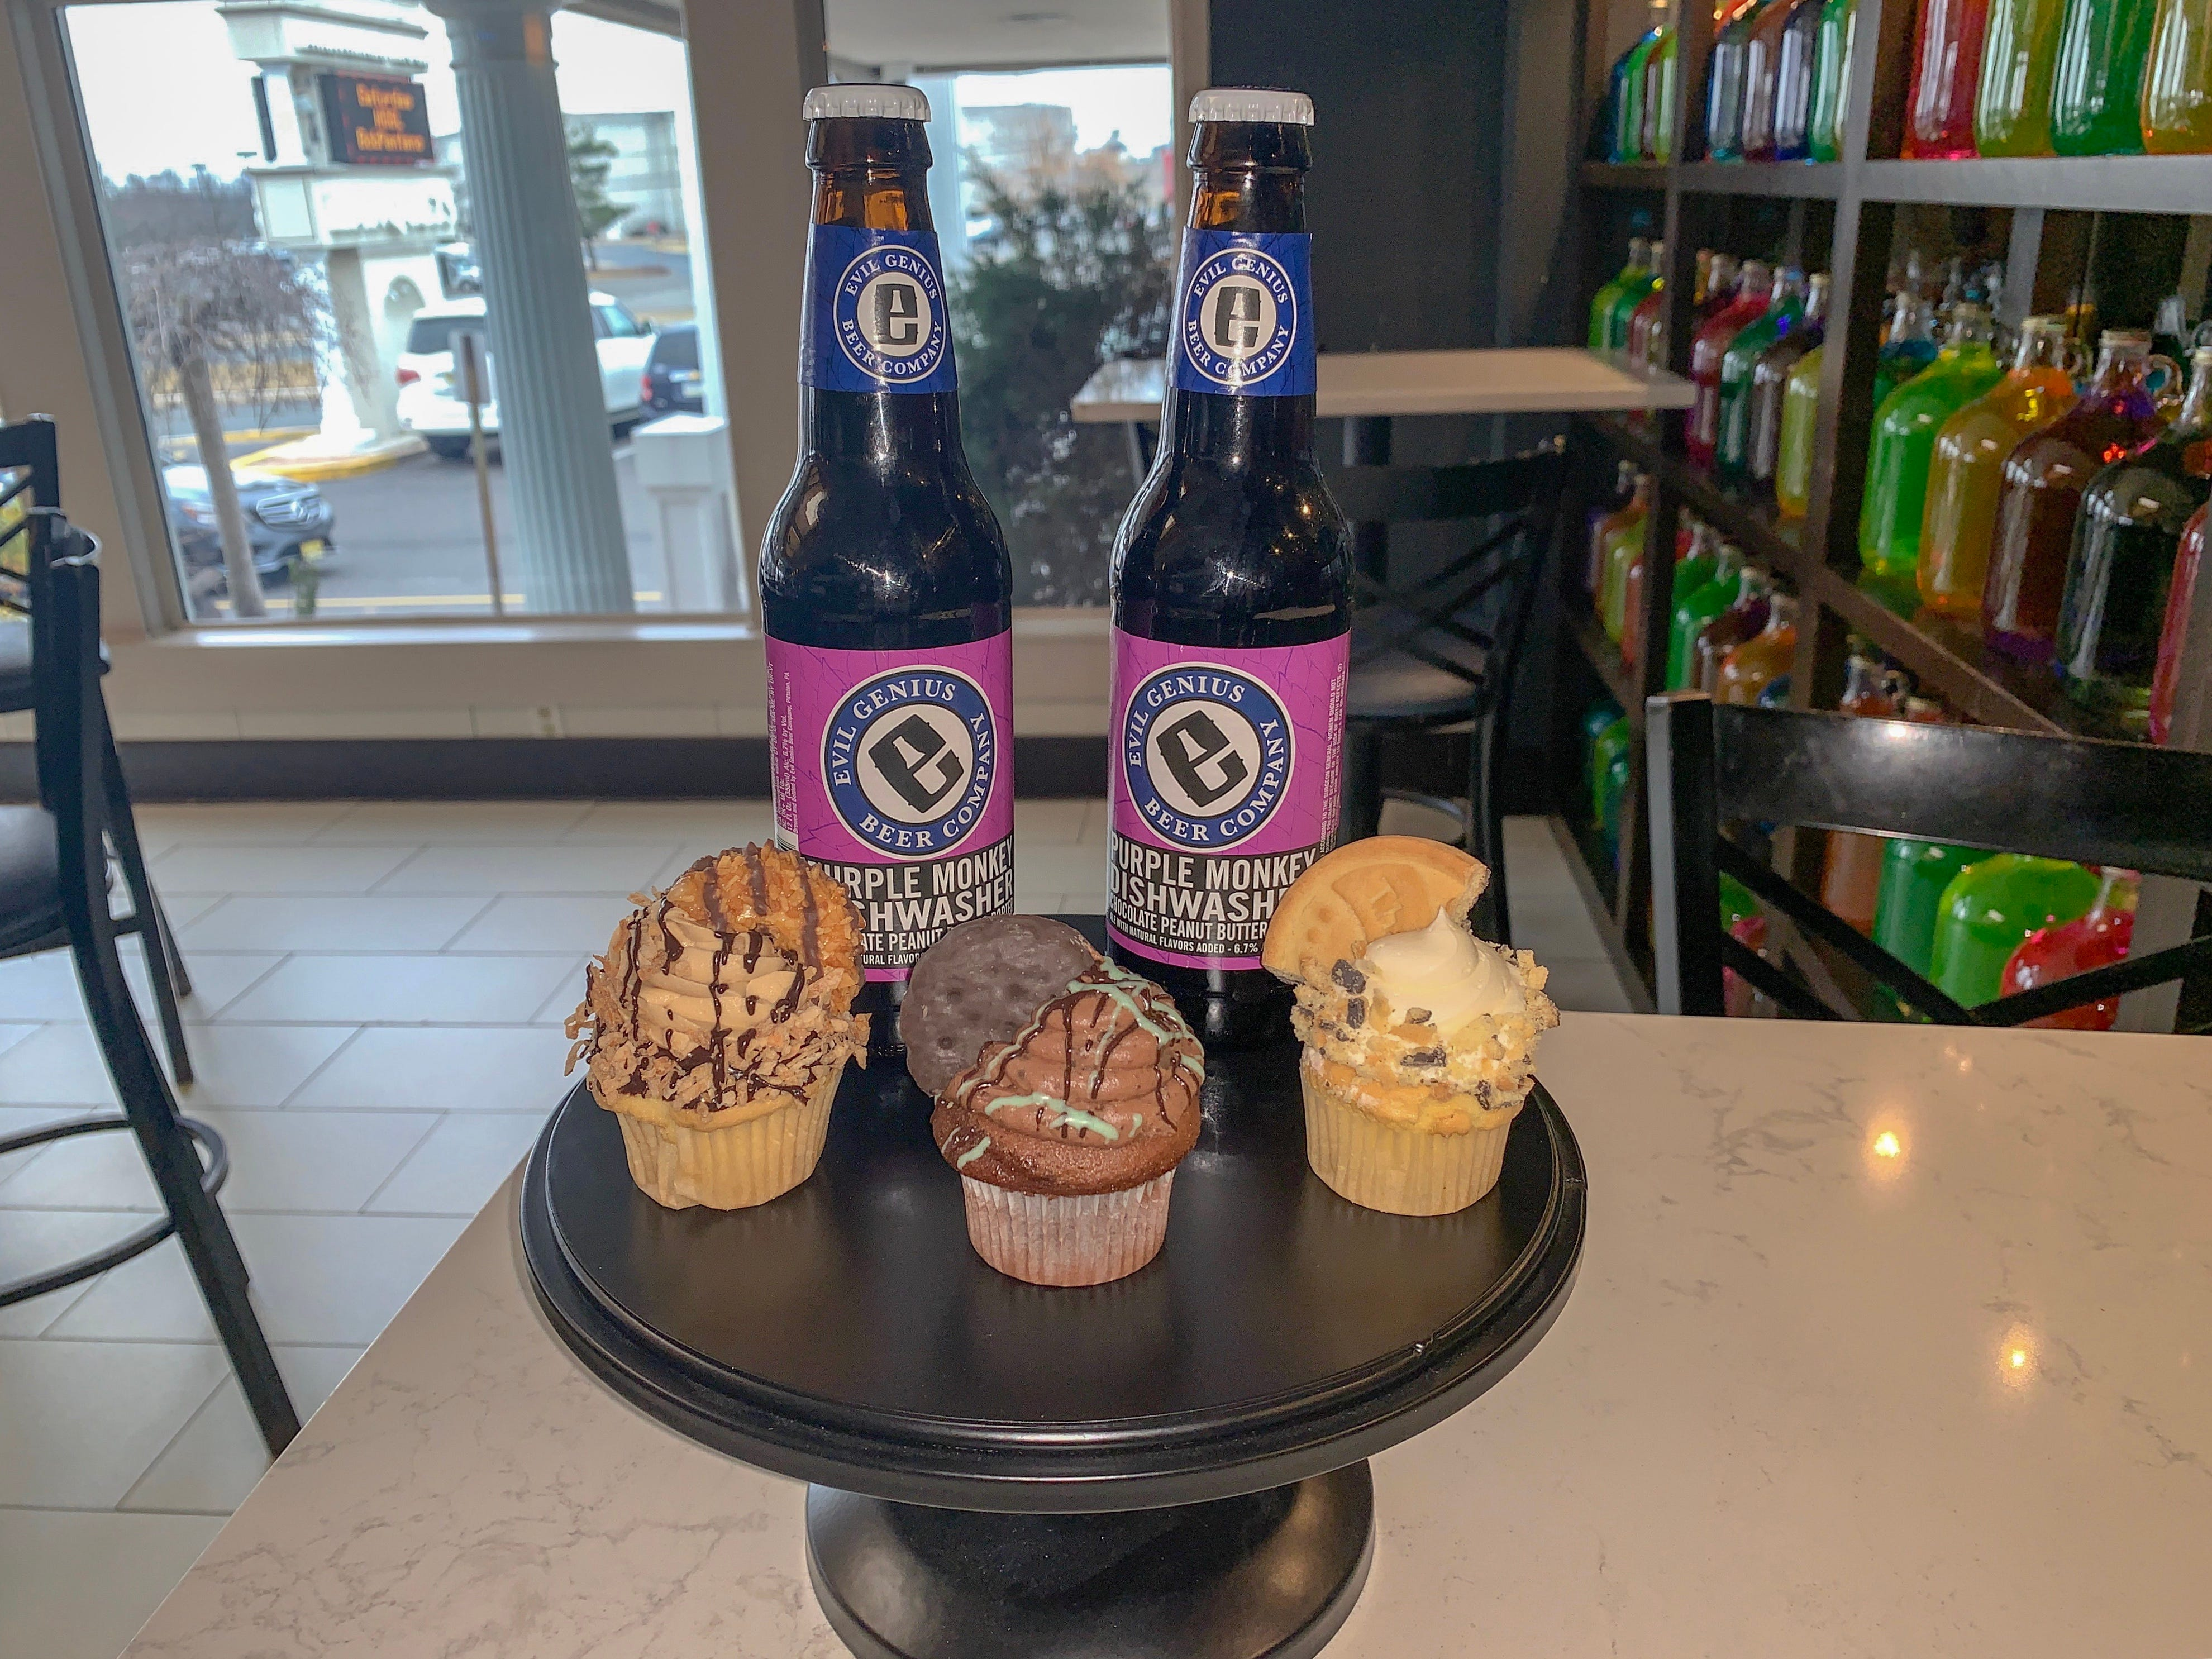 At Adelphia, Girl Scout Cookie cupcake flights & beer support local troops